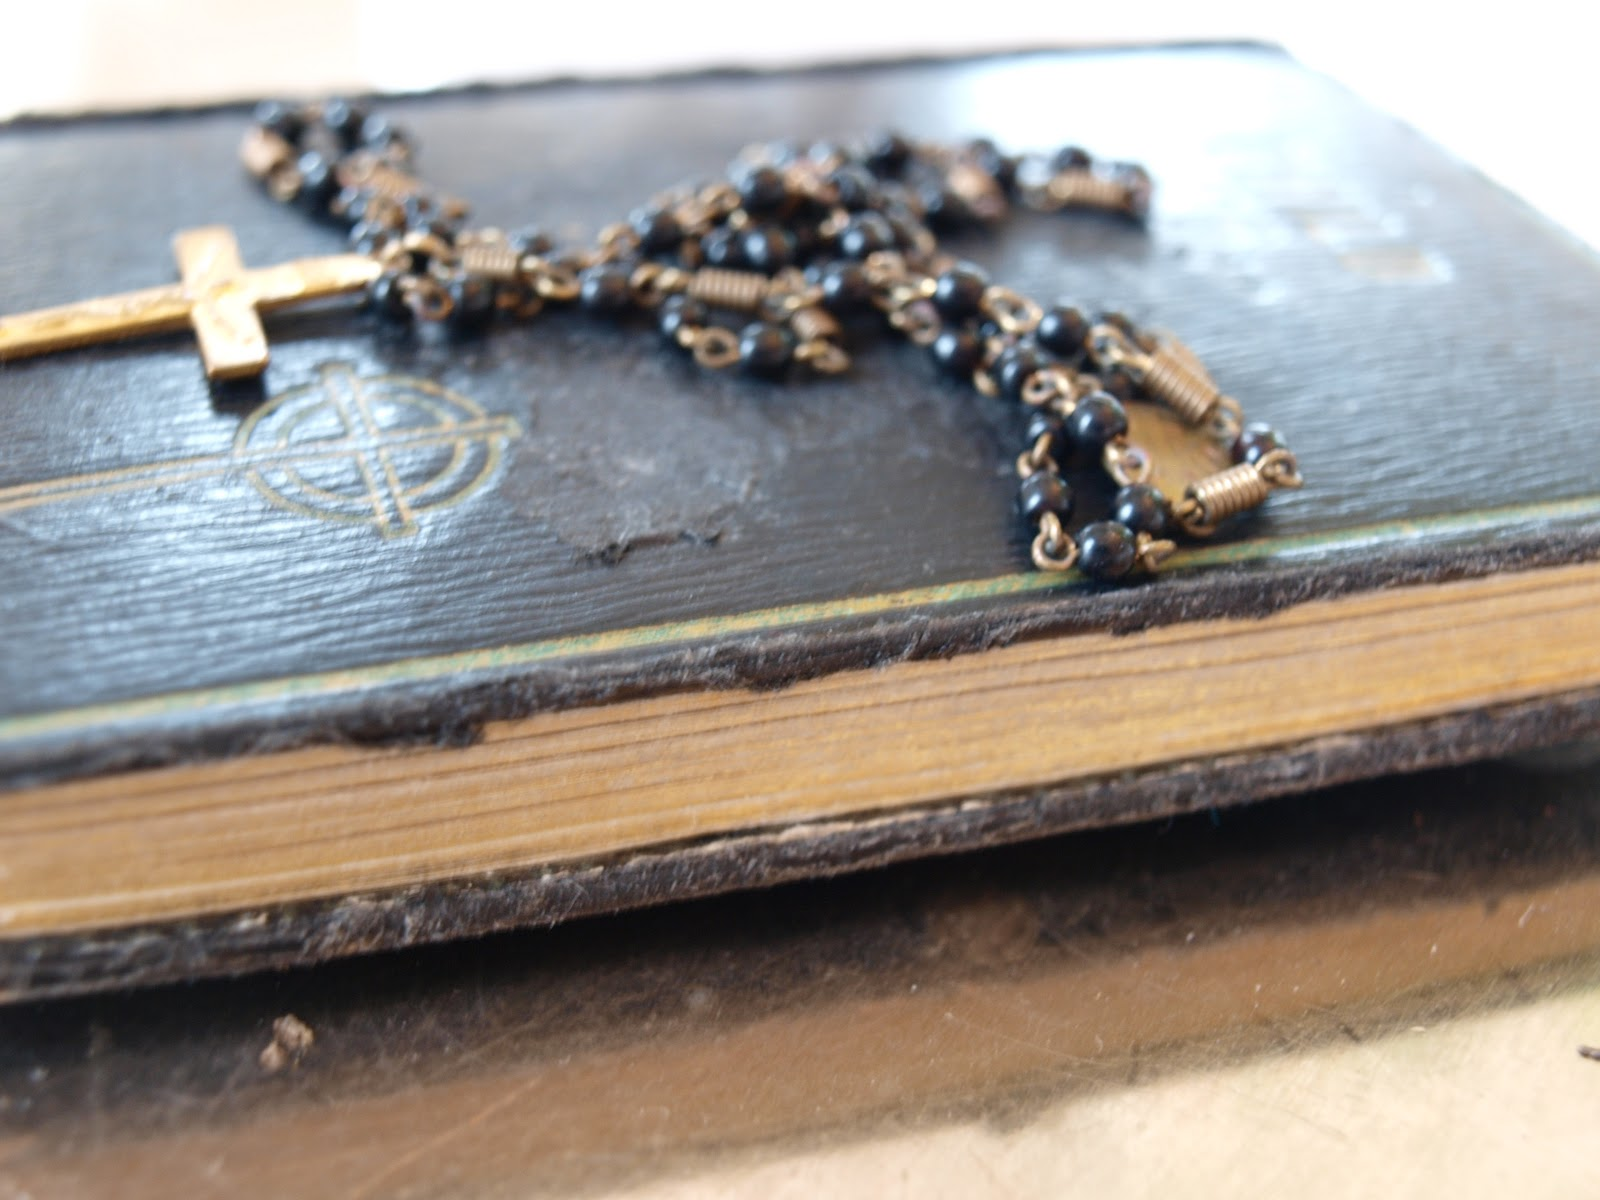 Vintage bible with rosary necklace on top